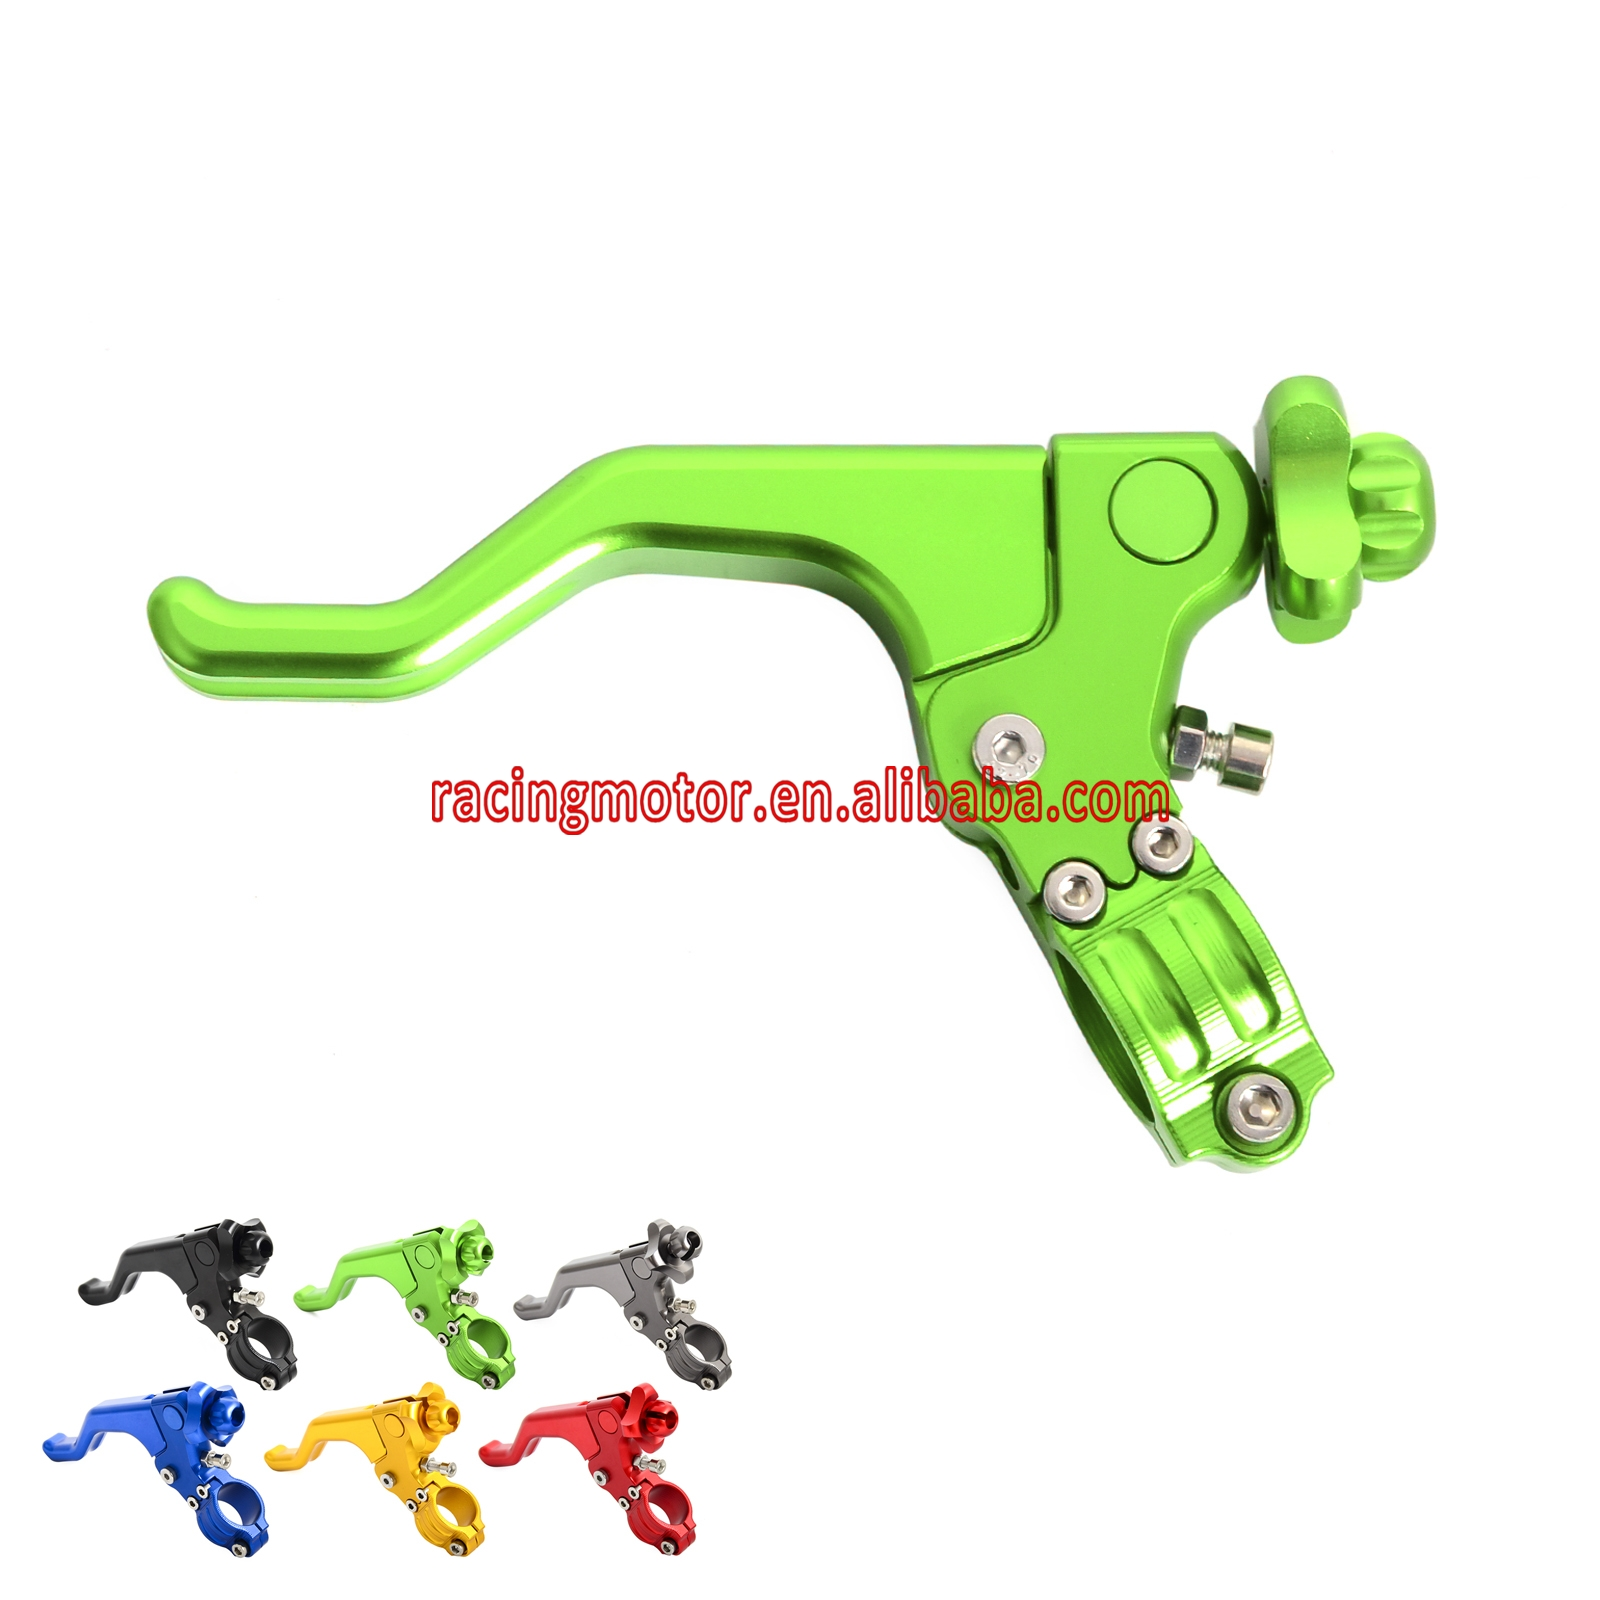 22MM 7/8 CNC Short Stunt Clutch Lever Assembly For Yamaha YZ85 YZ125 YZ250 YZ250F YZ450F WR250F WR450F TTR250 WR250 R/X<br>